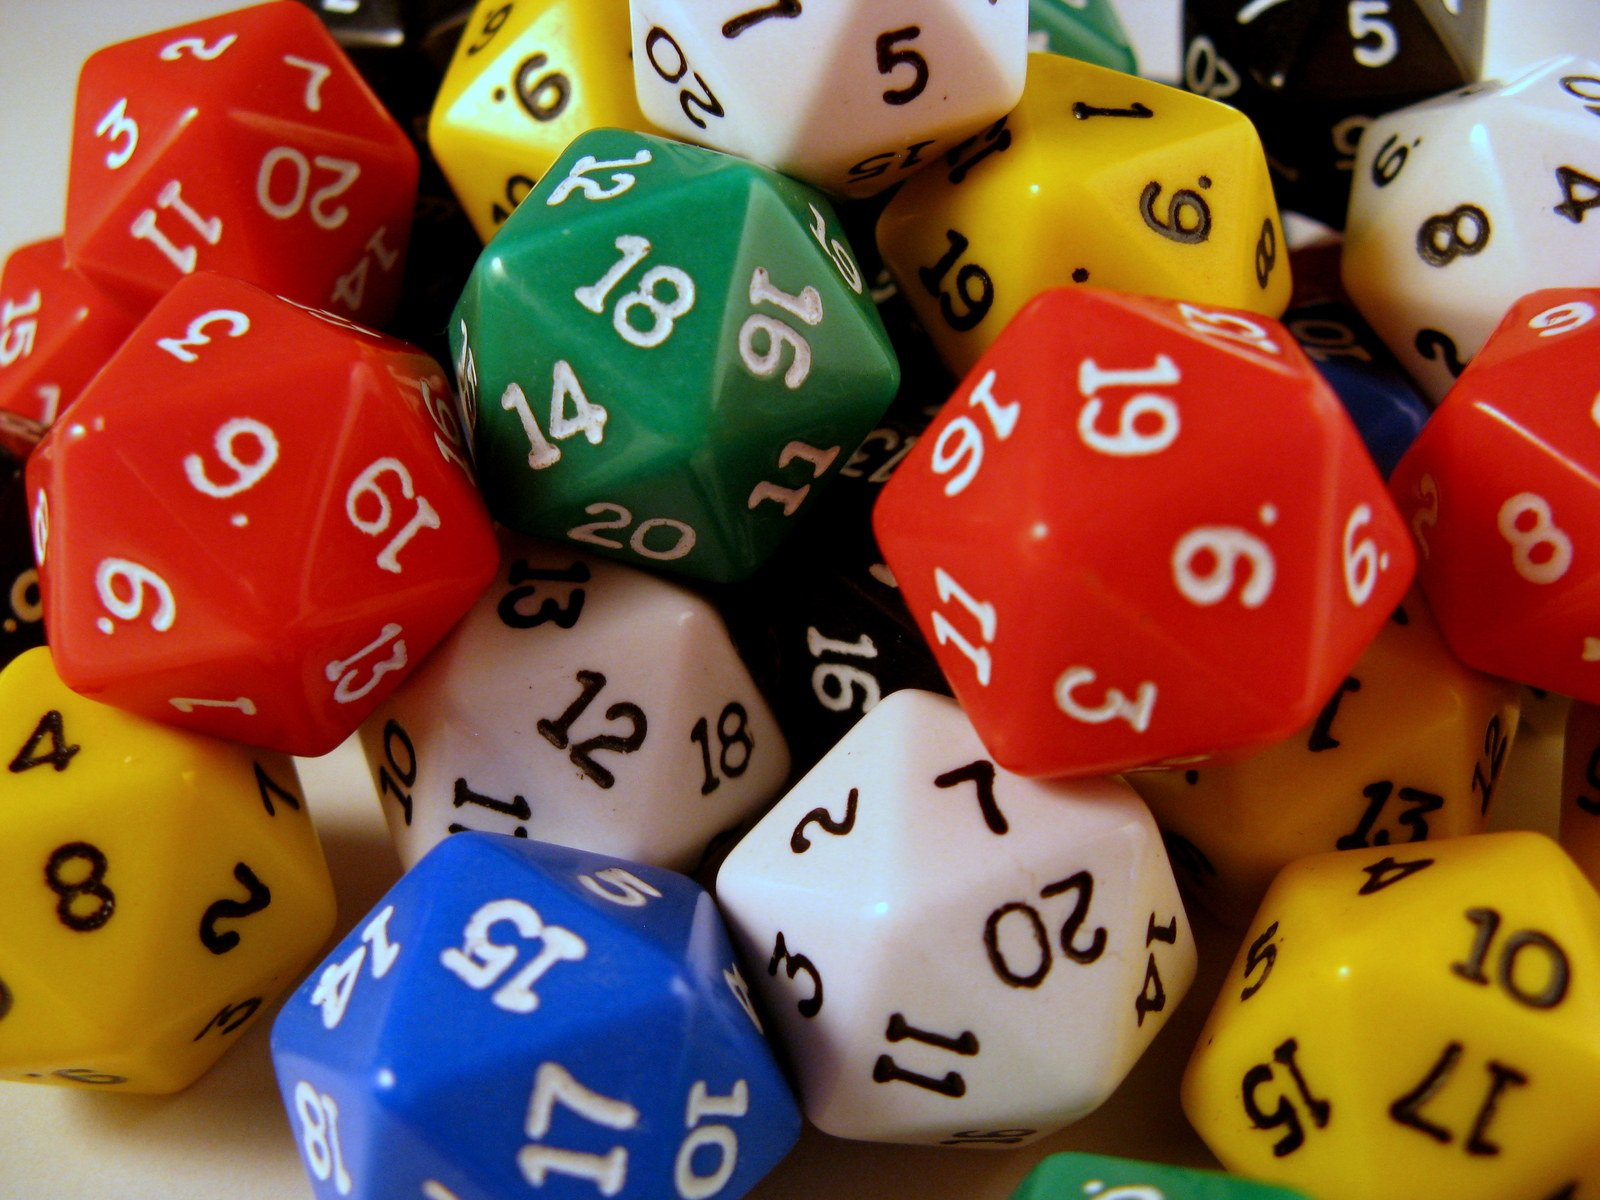 Free 20 Sided Dice 2 Stock Photo